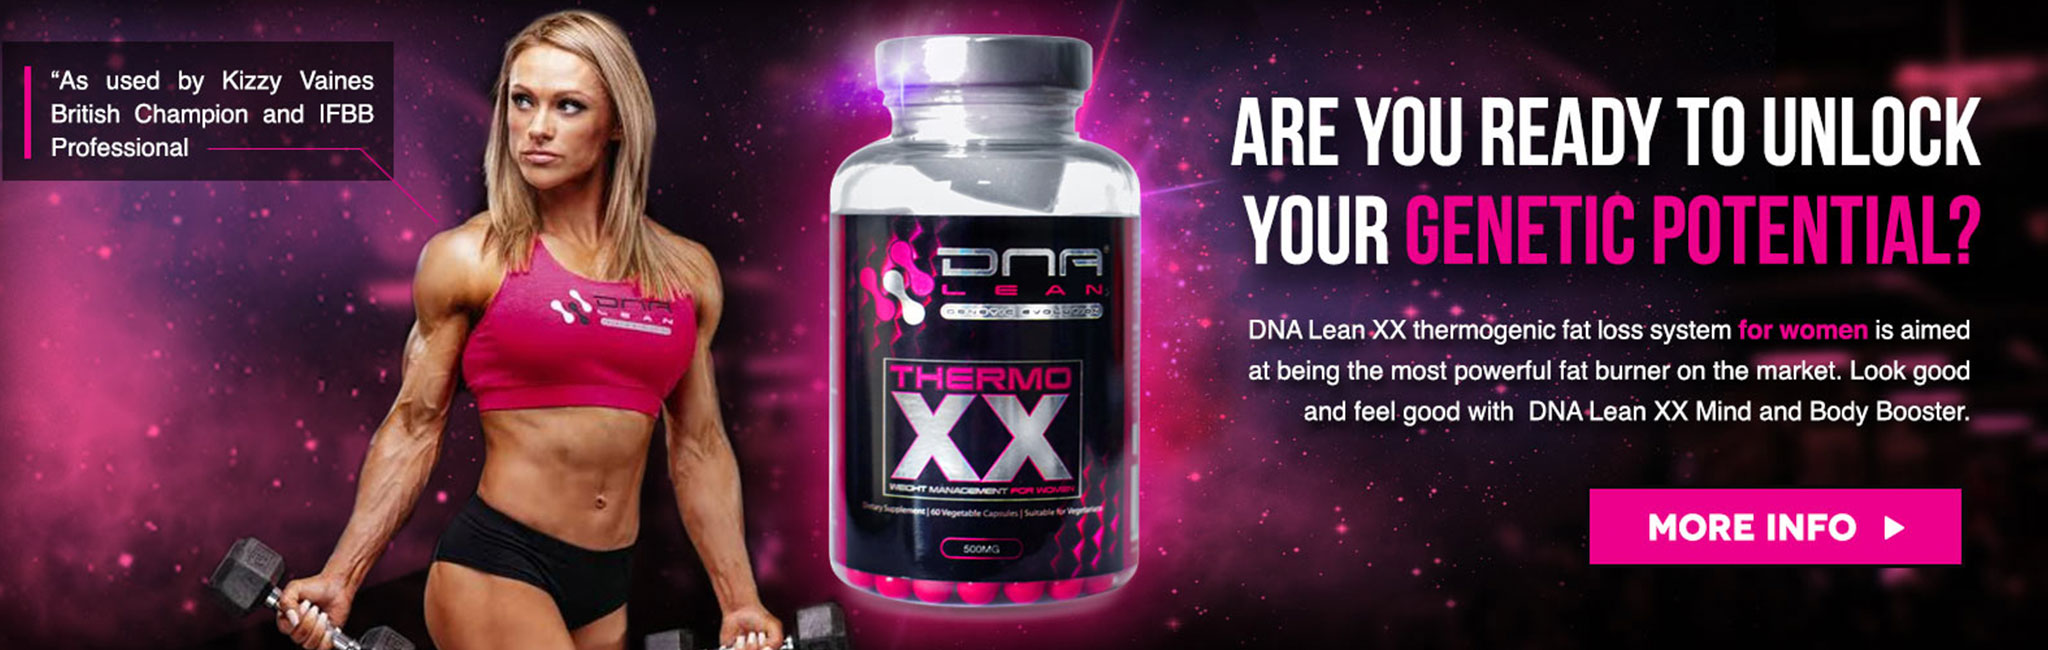 Unlock your genetic potential with DNA Lean thermo XX! A new era of female fat burning has arrived with DNA lean thermo XX!